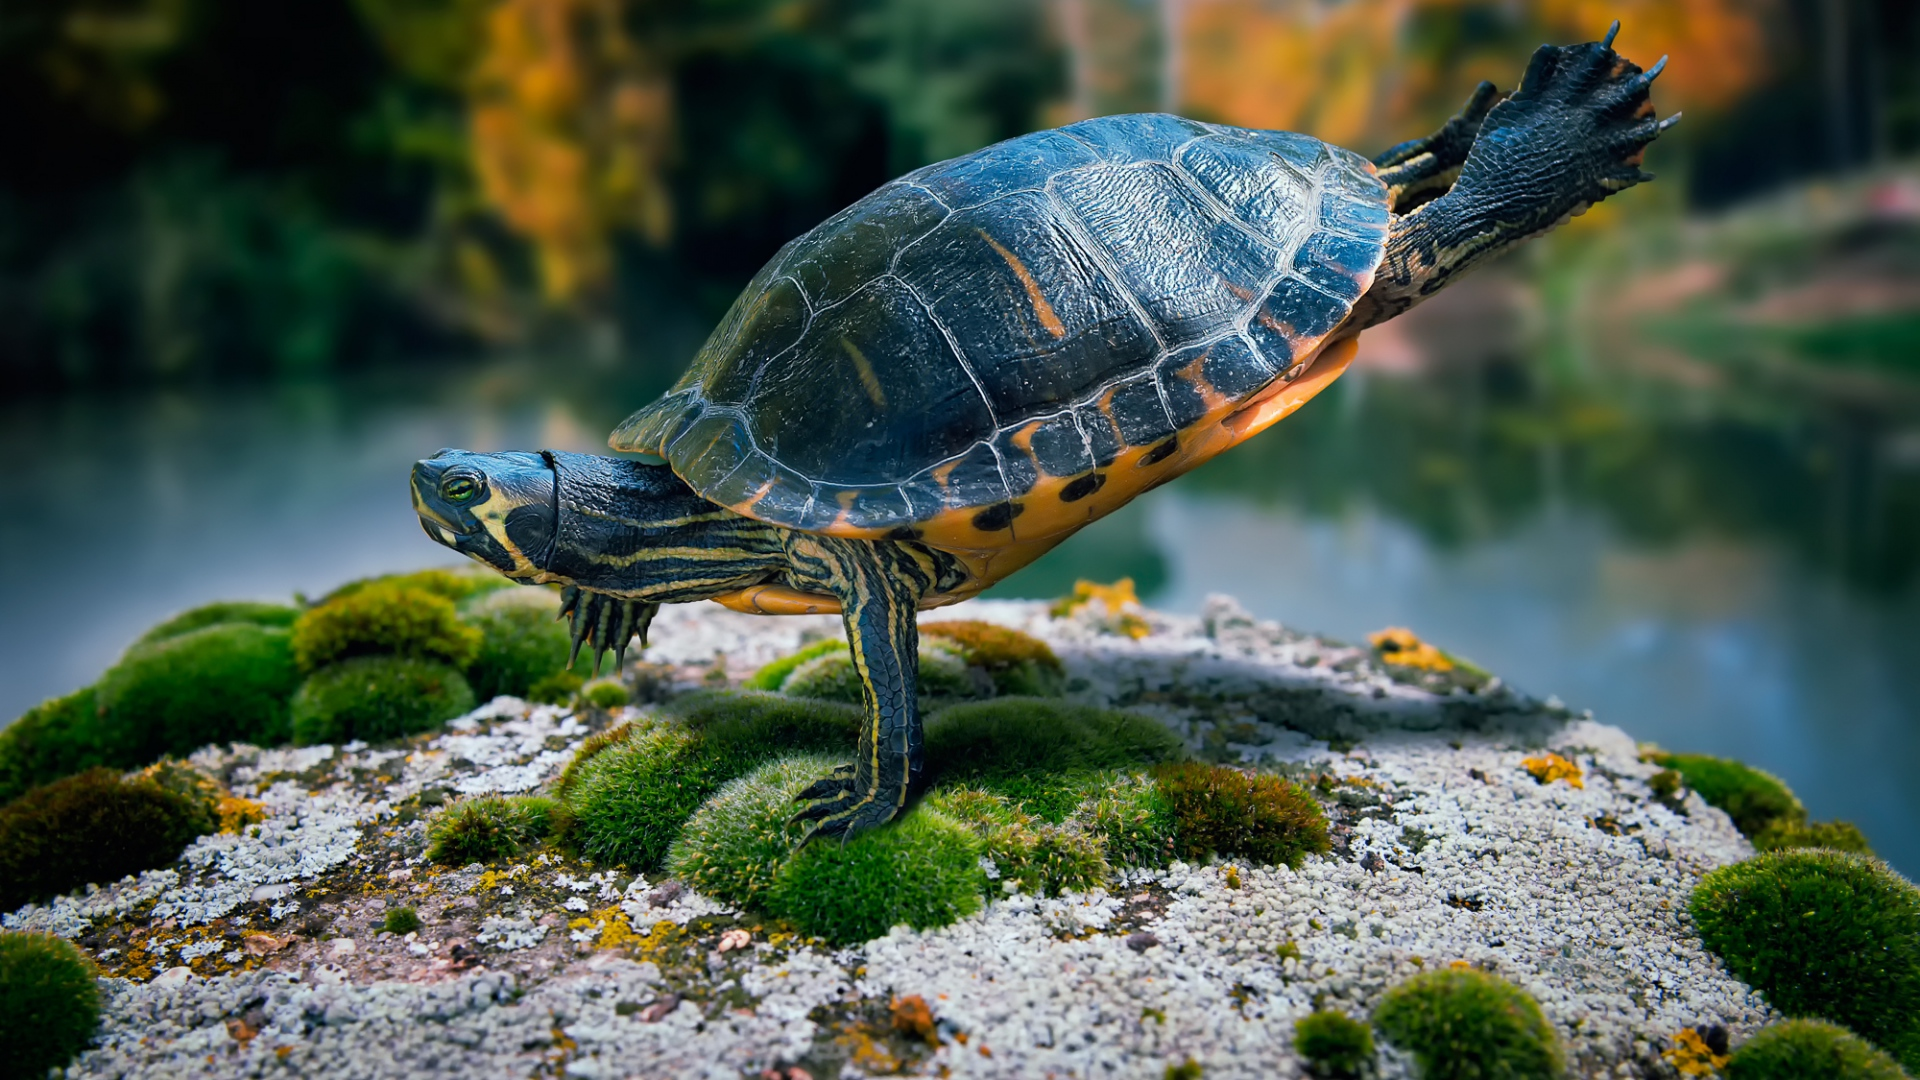 4k turtles wallpapers high quality download free